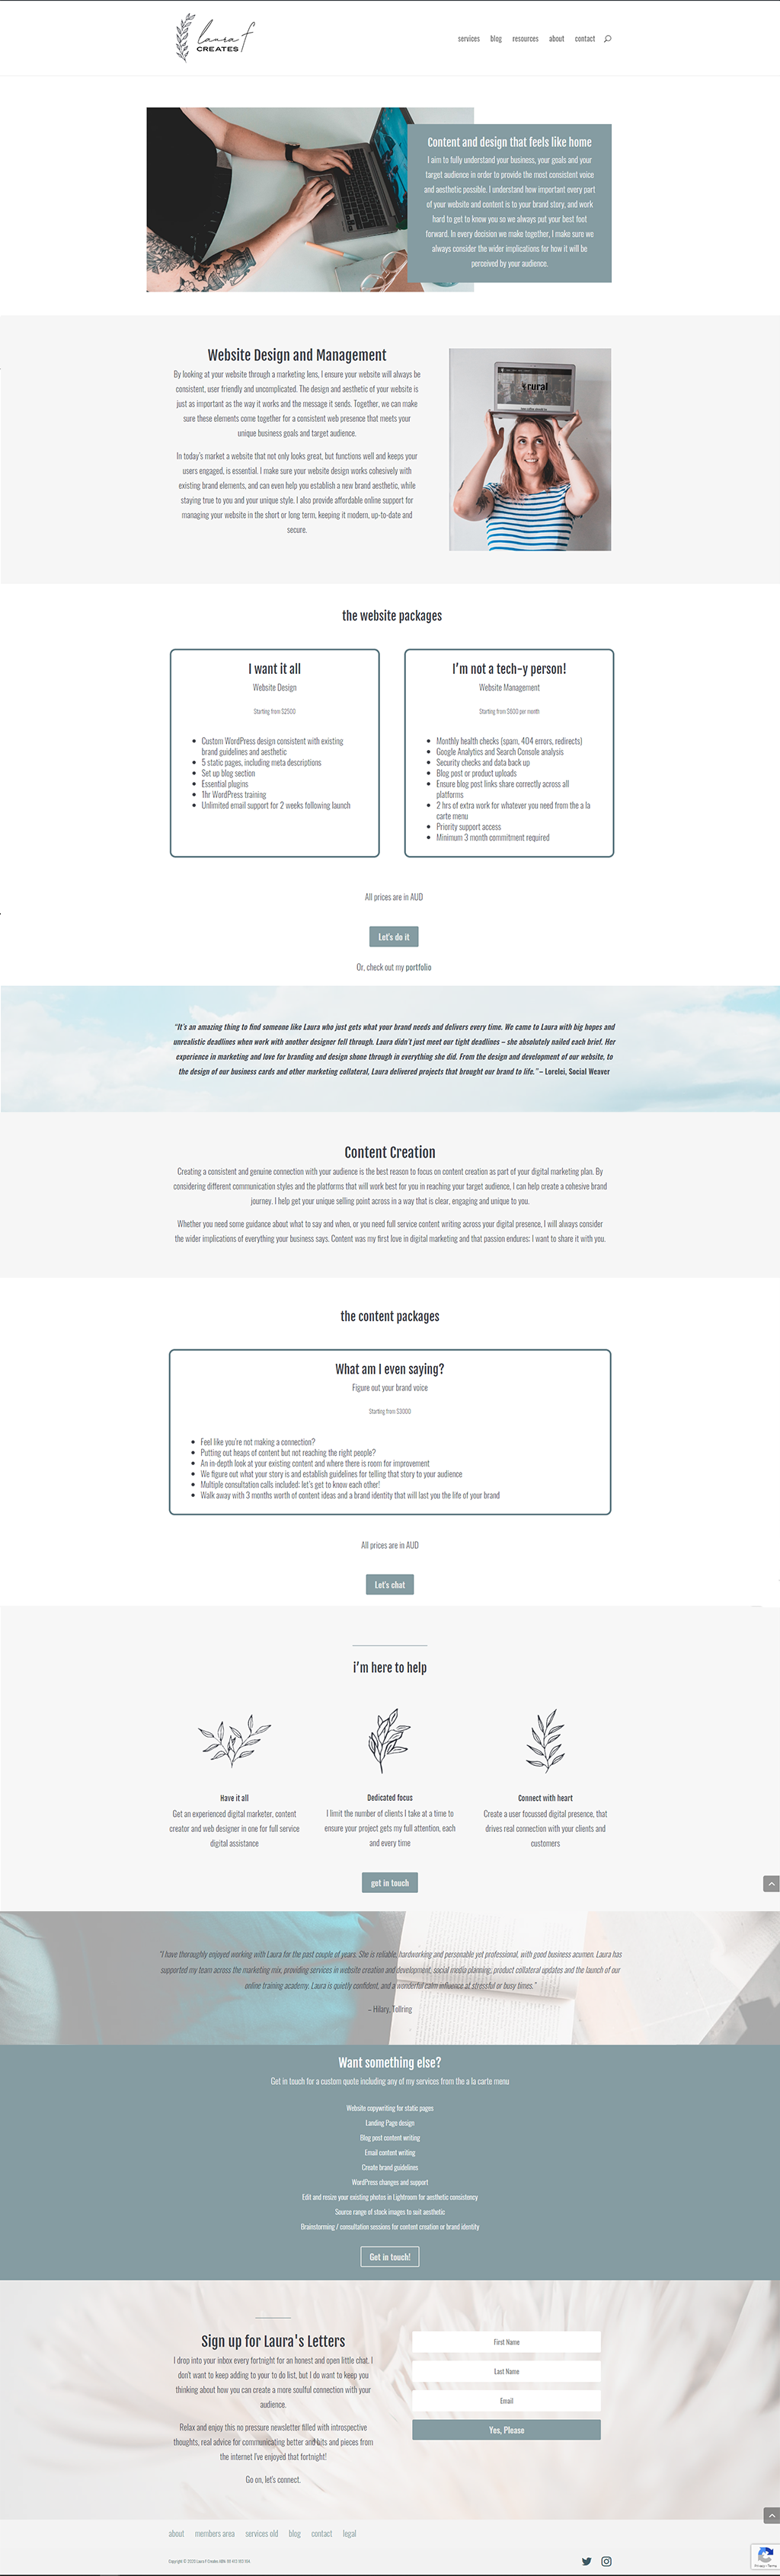 My Services Page Before Redesign